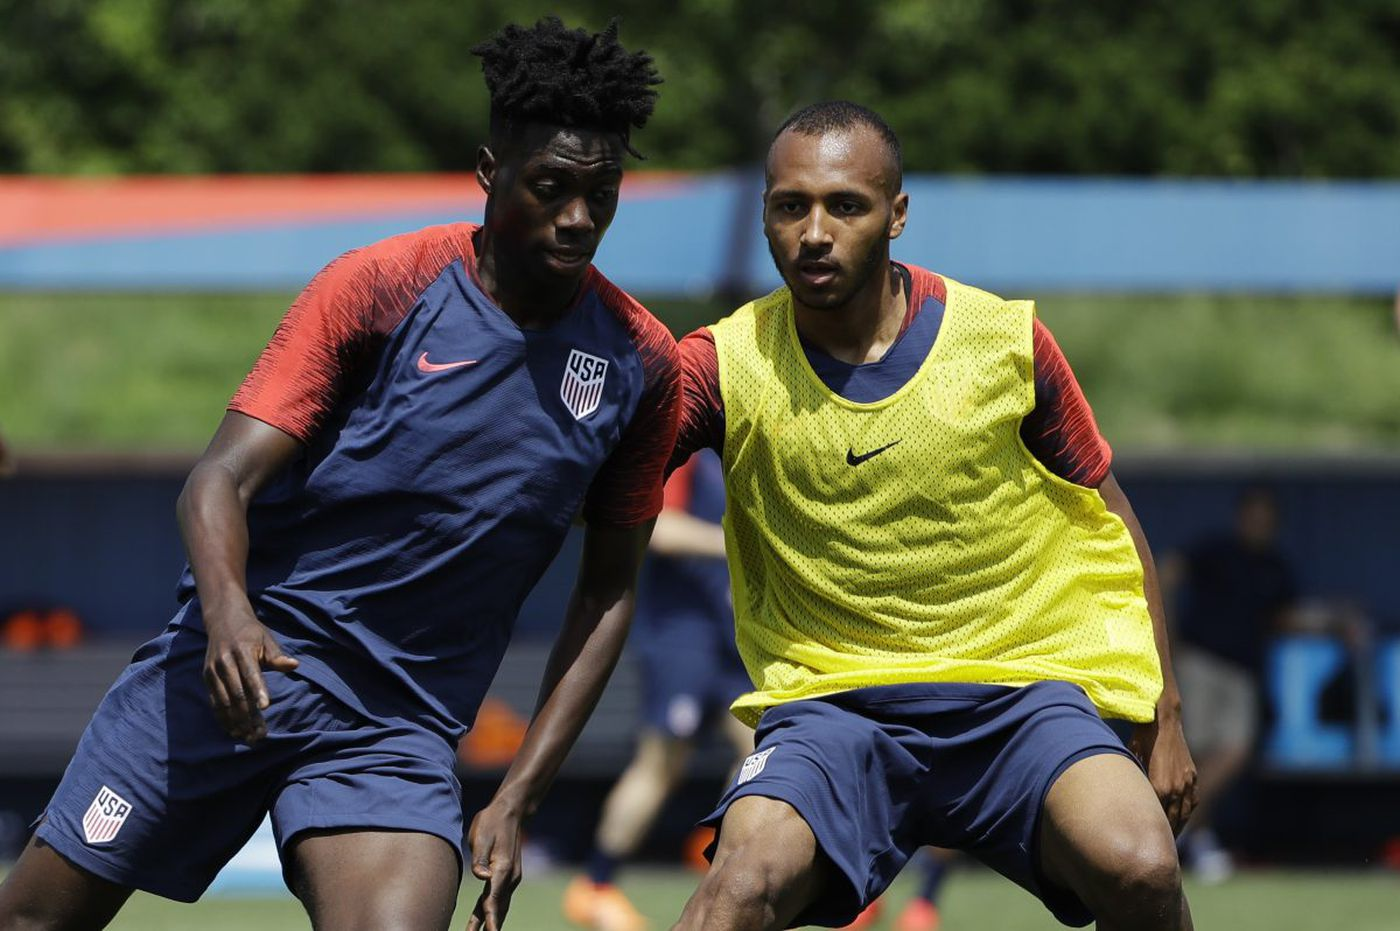 Julian Green never gave up on returning to the U.S. national soccer team